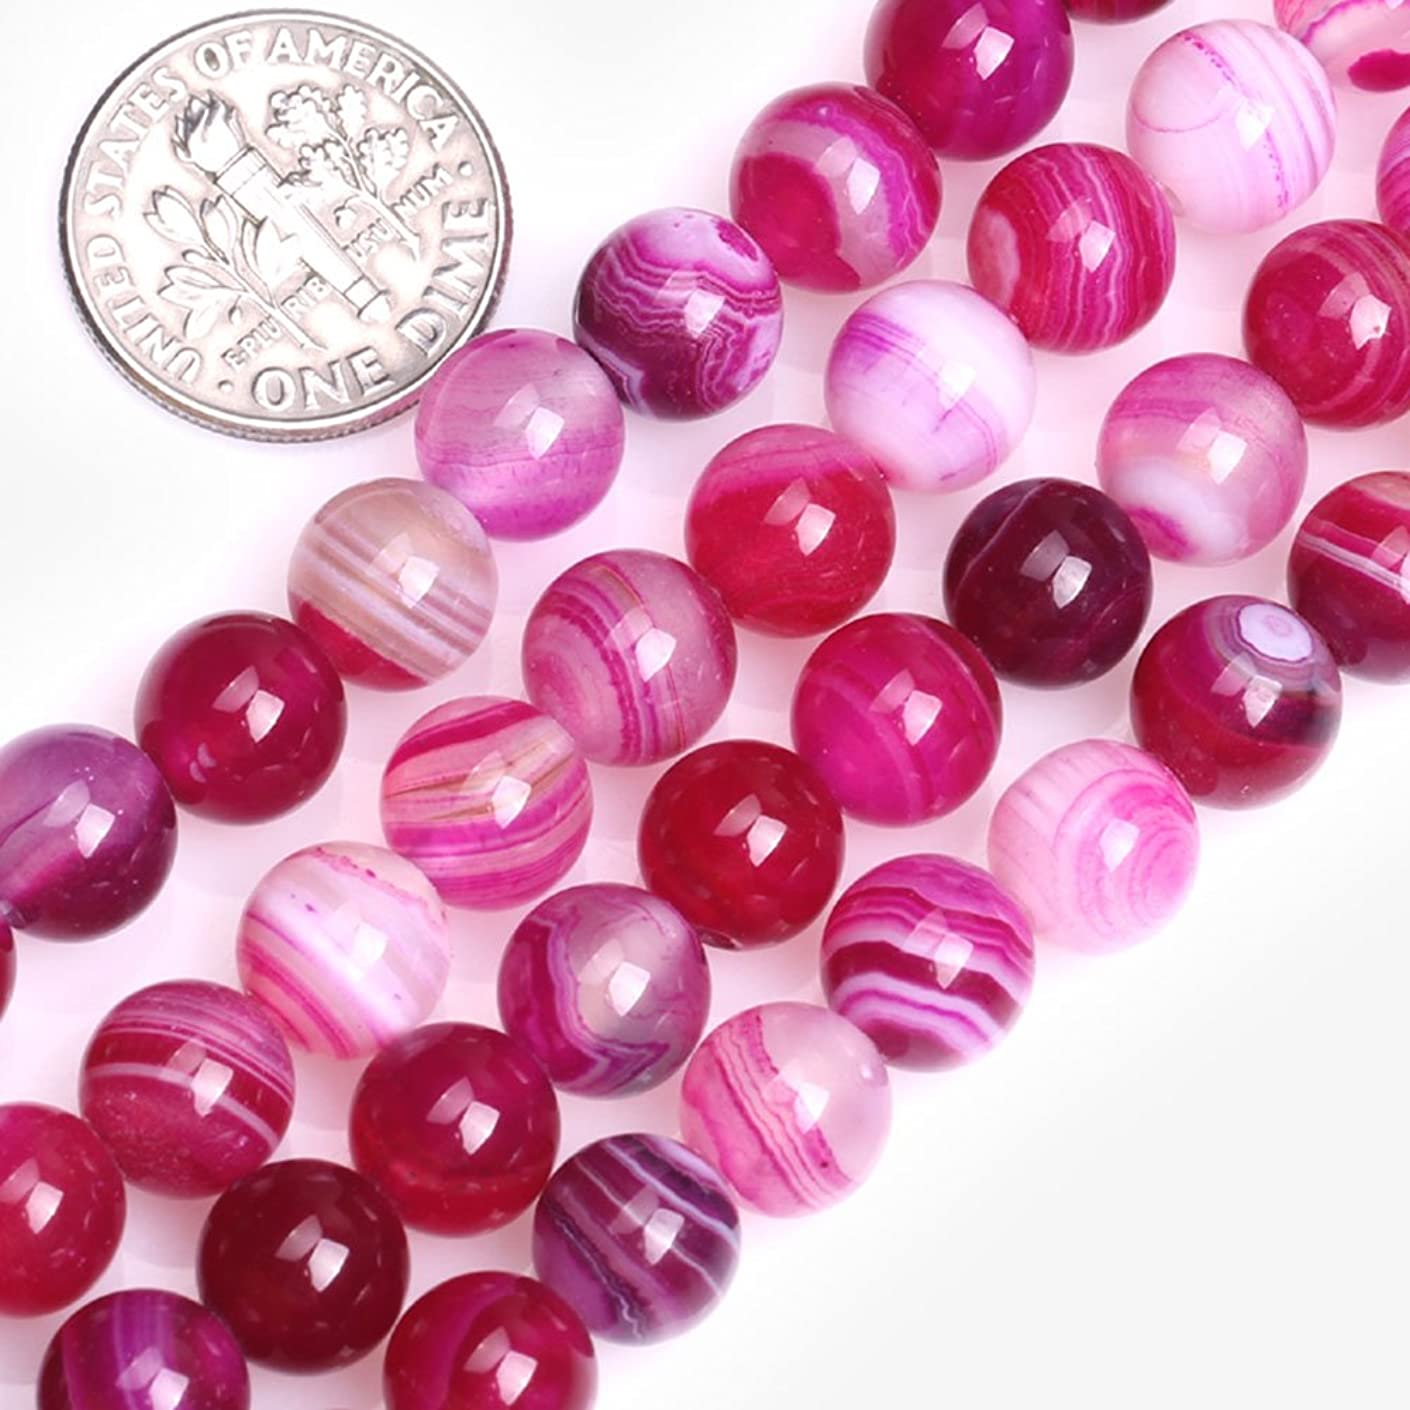 GEM-inside Banded Plum Agate Gemstone Loose Beads Natural Energy Power Beads For Jewelry Making Round 8mm 15